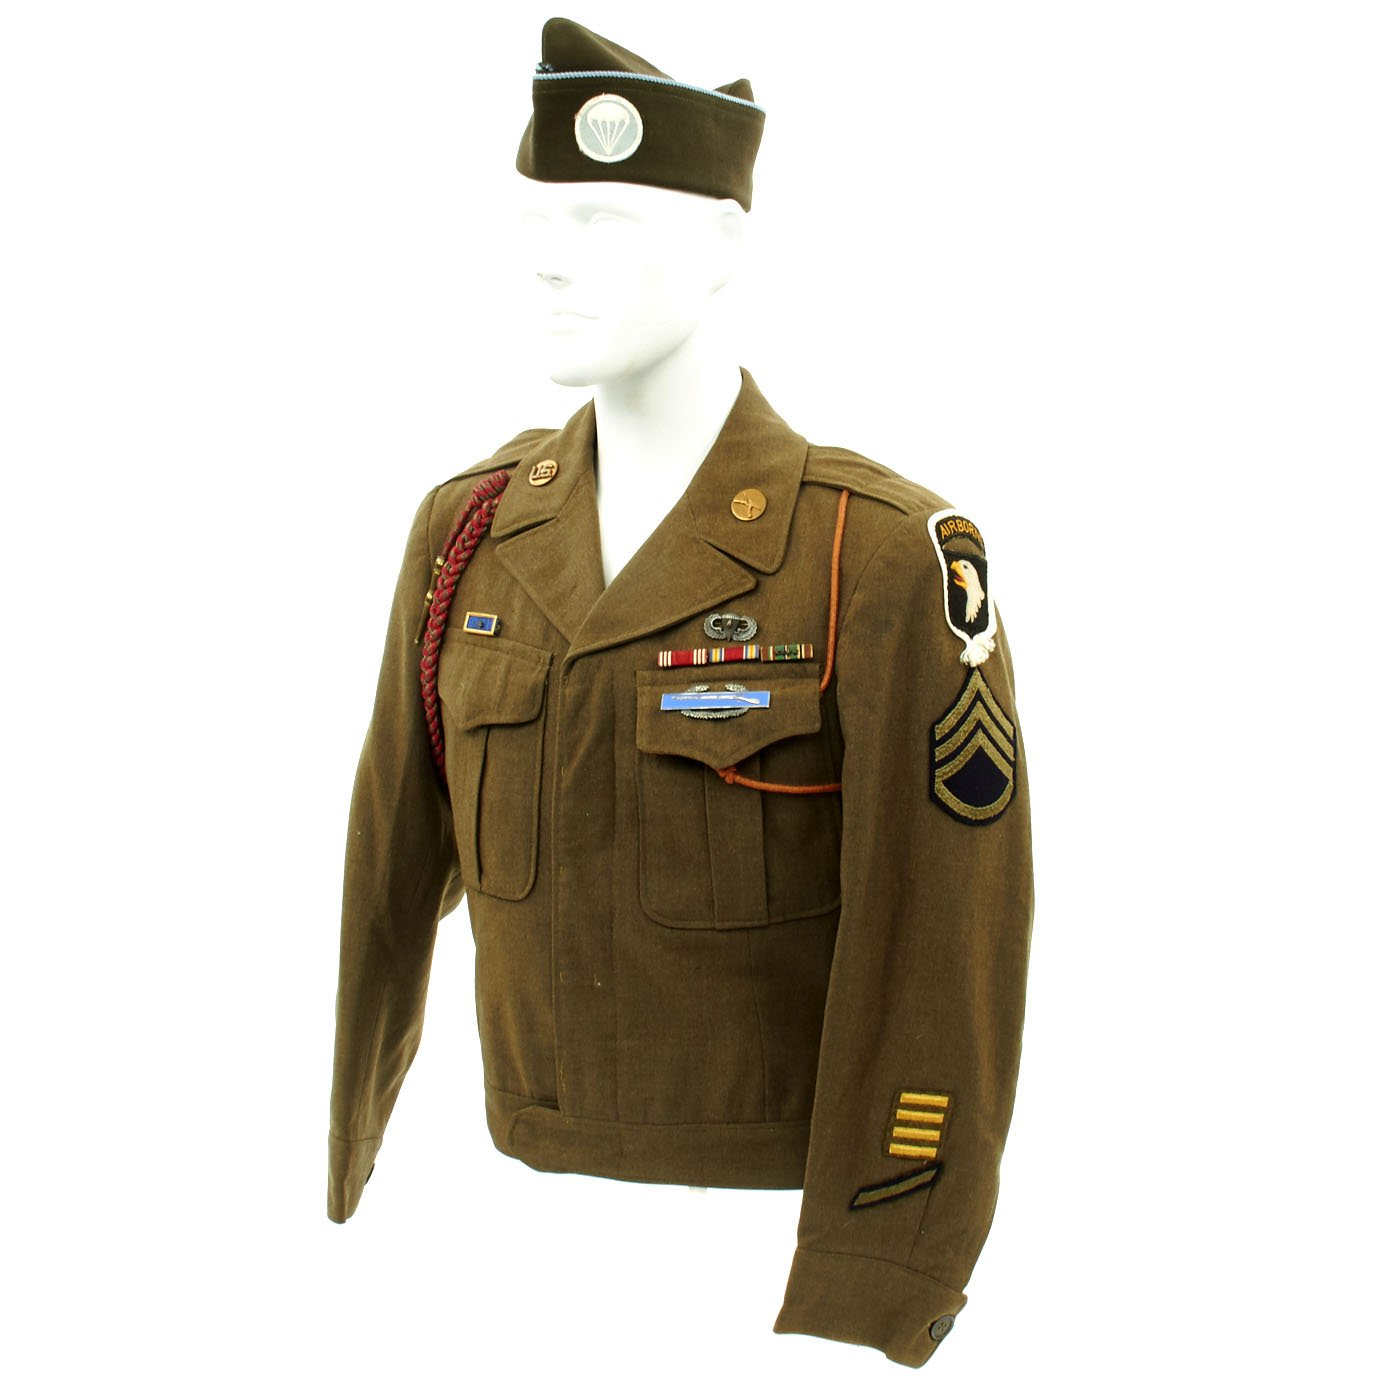 Original U S Wwii 101st Airborne 506th Pir Named Uniform Grouping Band Of Brothers International Military Antiques